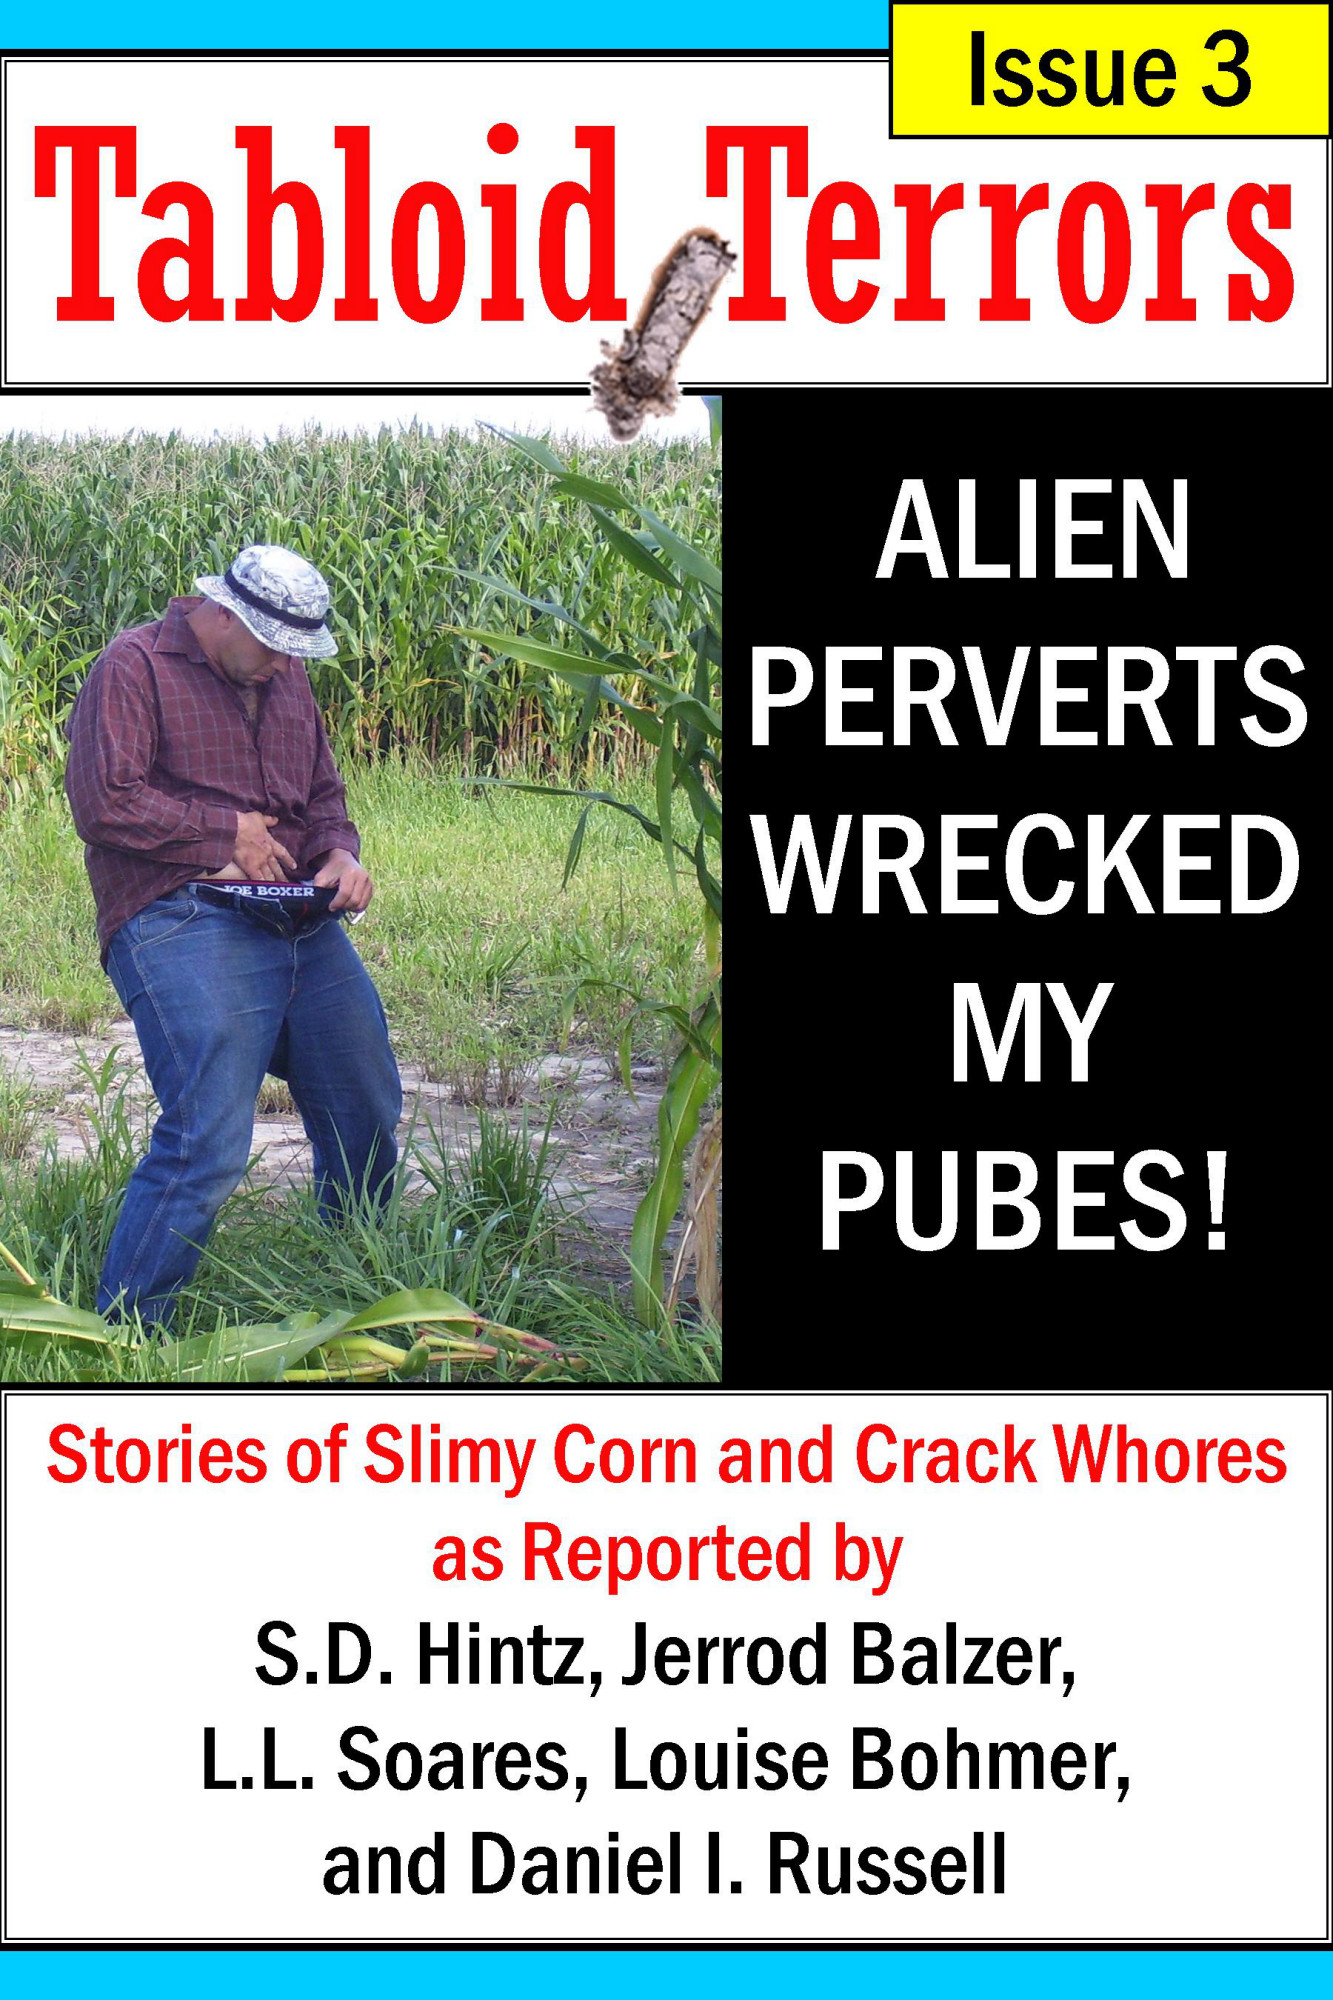 Tabloid Terrors 3: Alien Perverts Wrecked My Pubes